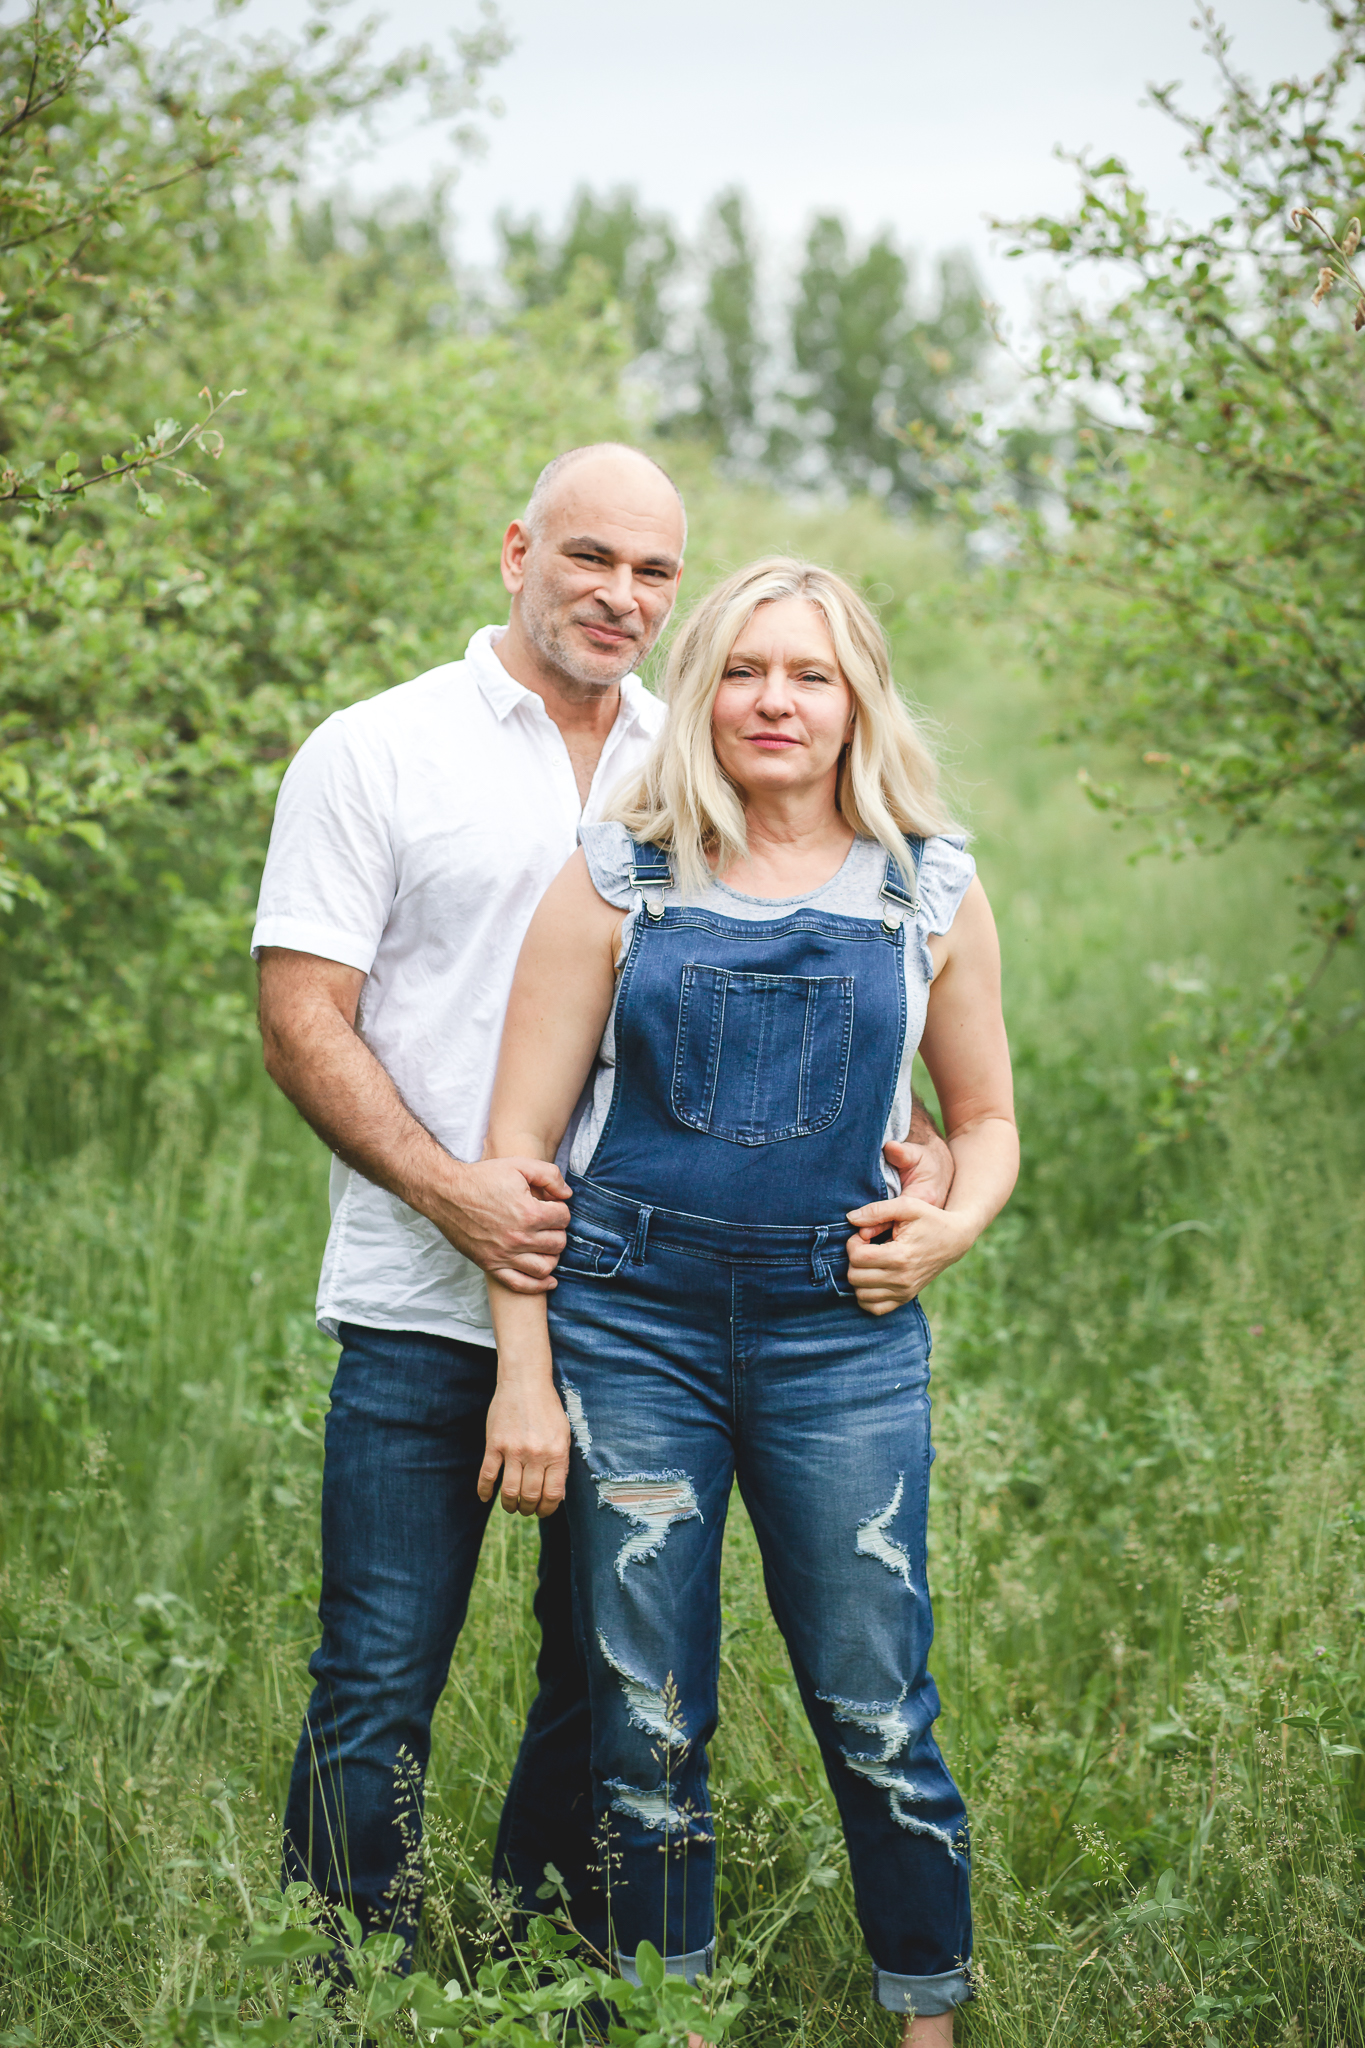 Family Photography- Lifestyle Family Photography- Candid Family Photography- Family Field- Family with Dog- Barrie Family Photographer- Apple Orchard Family Session- Smoke Bomb Photo (59 of 83).jpg